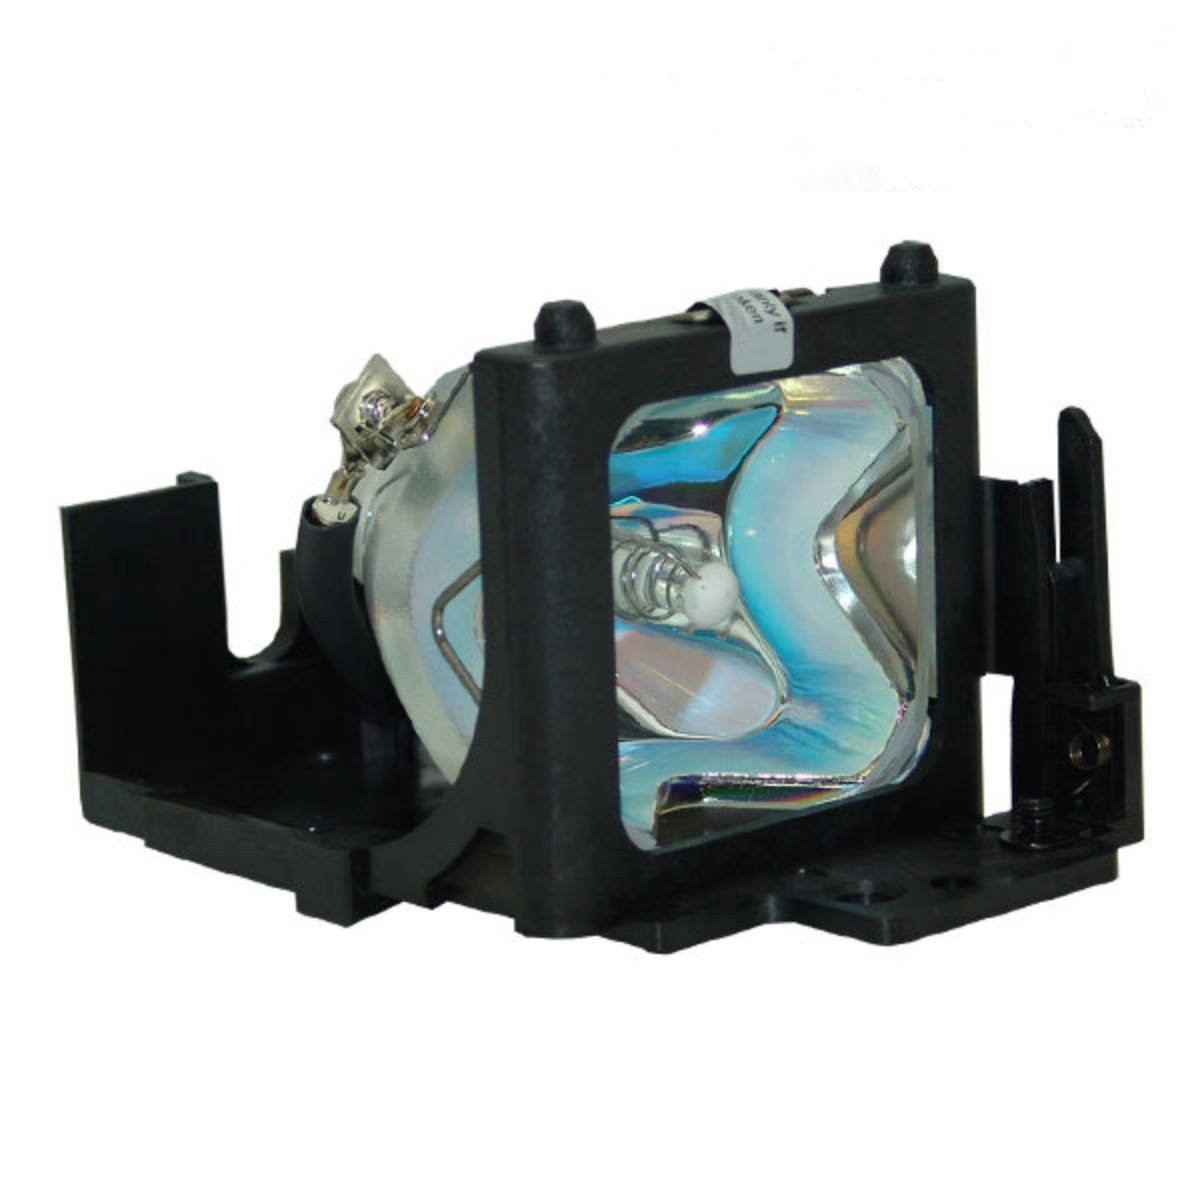 DT00381 DT-00381 for HITACHI CP-S220 CP-S220A CP-S220W CP-S270 CP-X270 CP-X270W PJ-LC2001  Projector Lamp Bulb With housing браслеты police pj 25685bsu 03 s